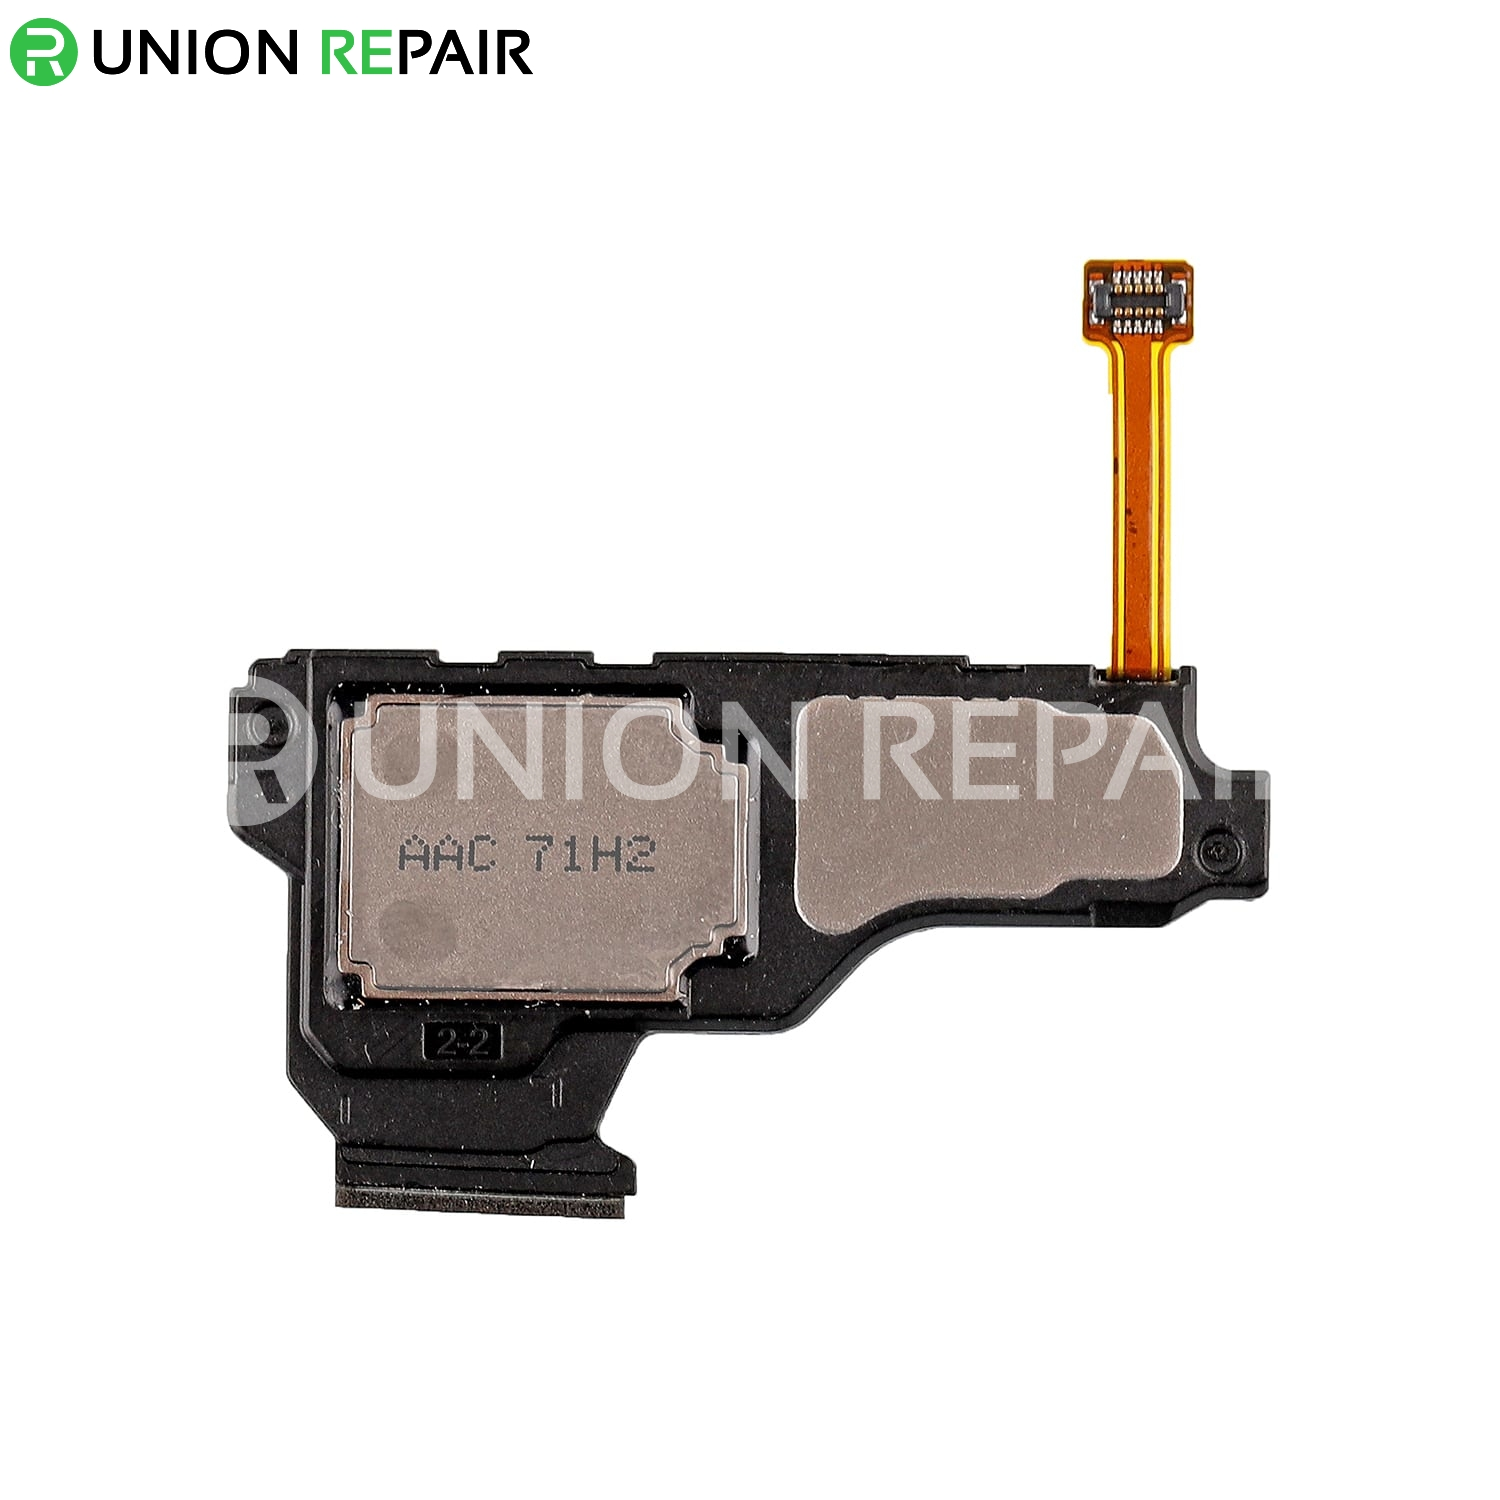 Replacement for Huawei P10 Plus Loud Speaker Assembly